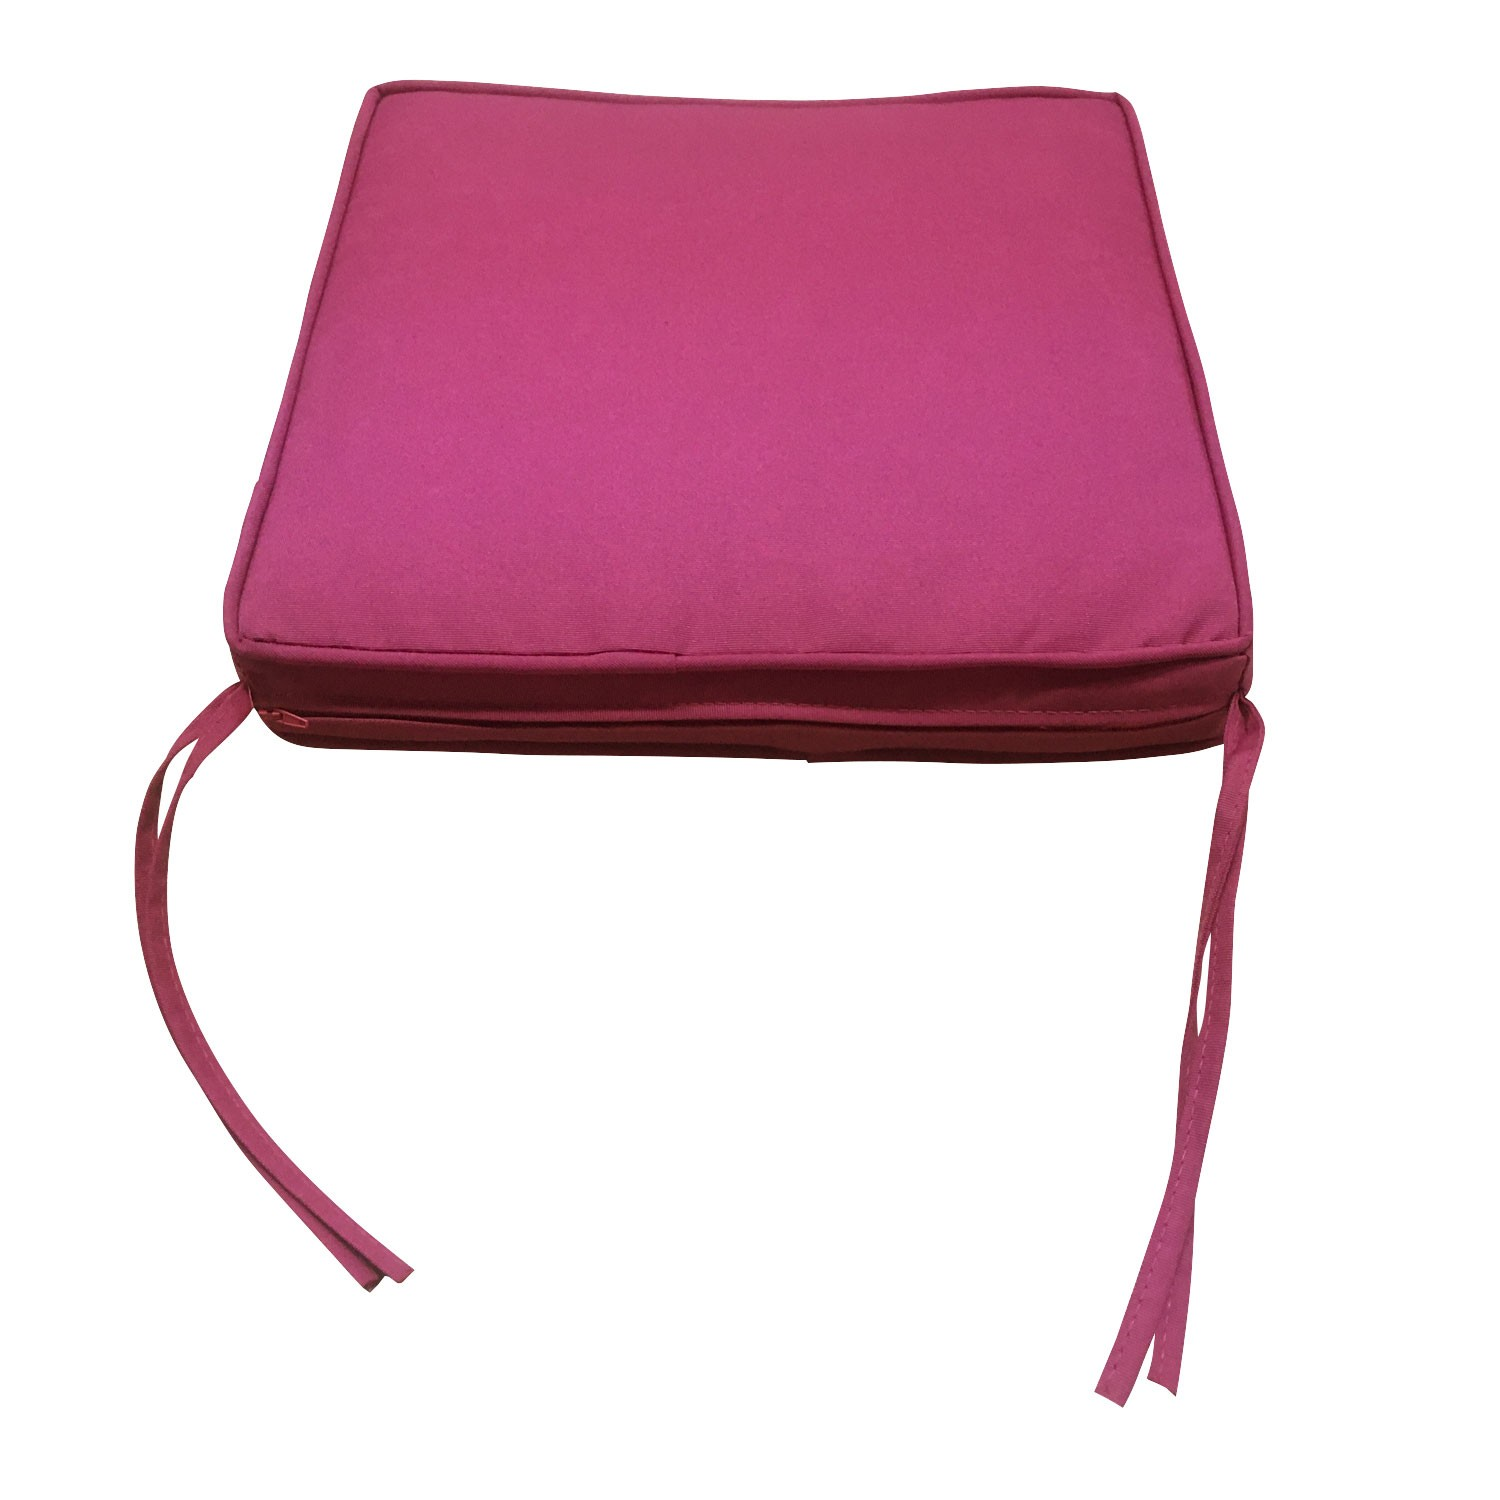 Lot de 4 coussins de chaise carré 40x40cm fuchsia